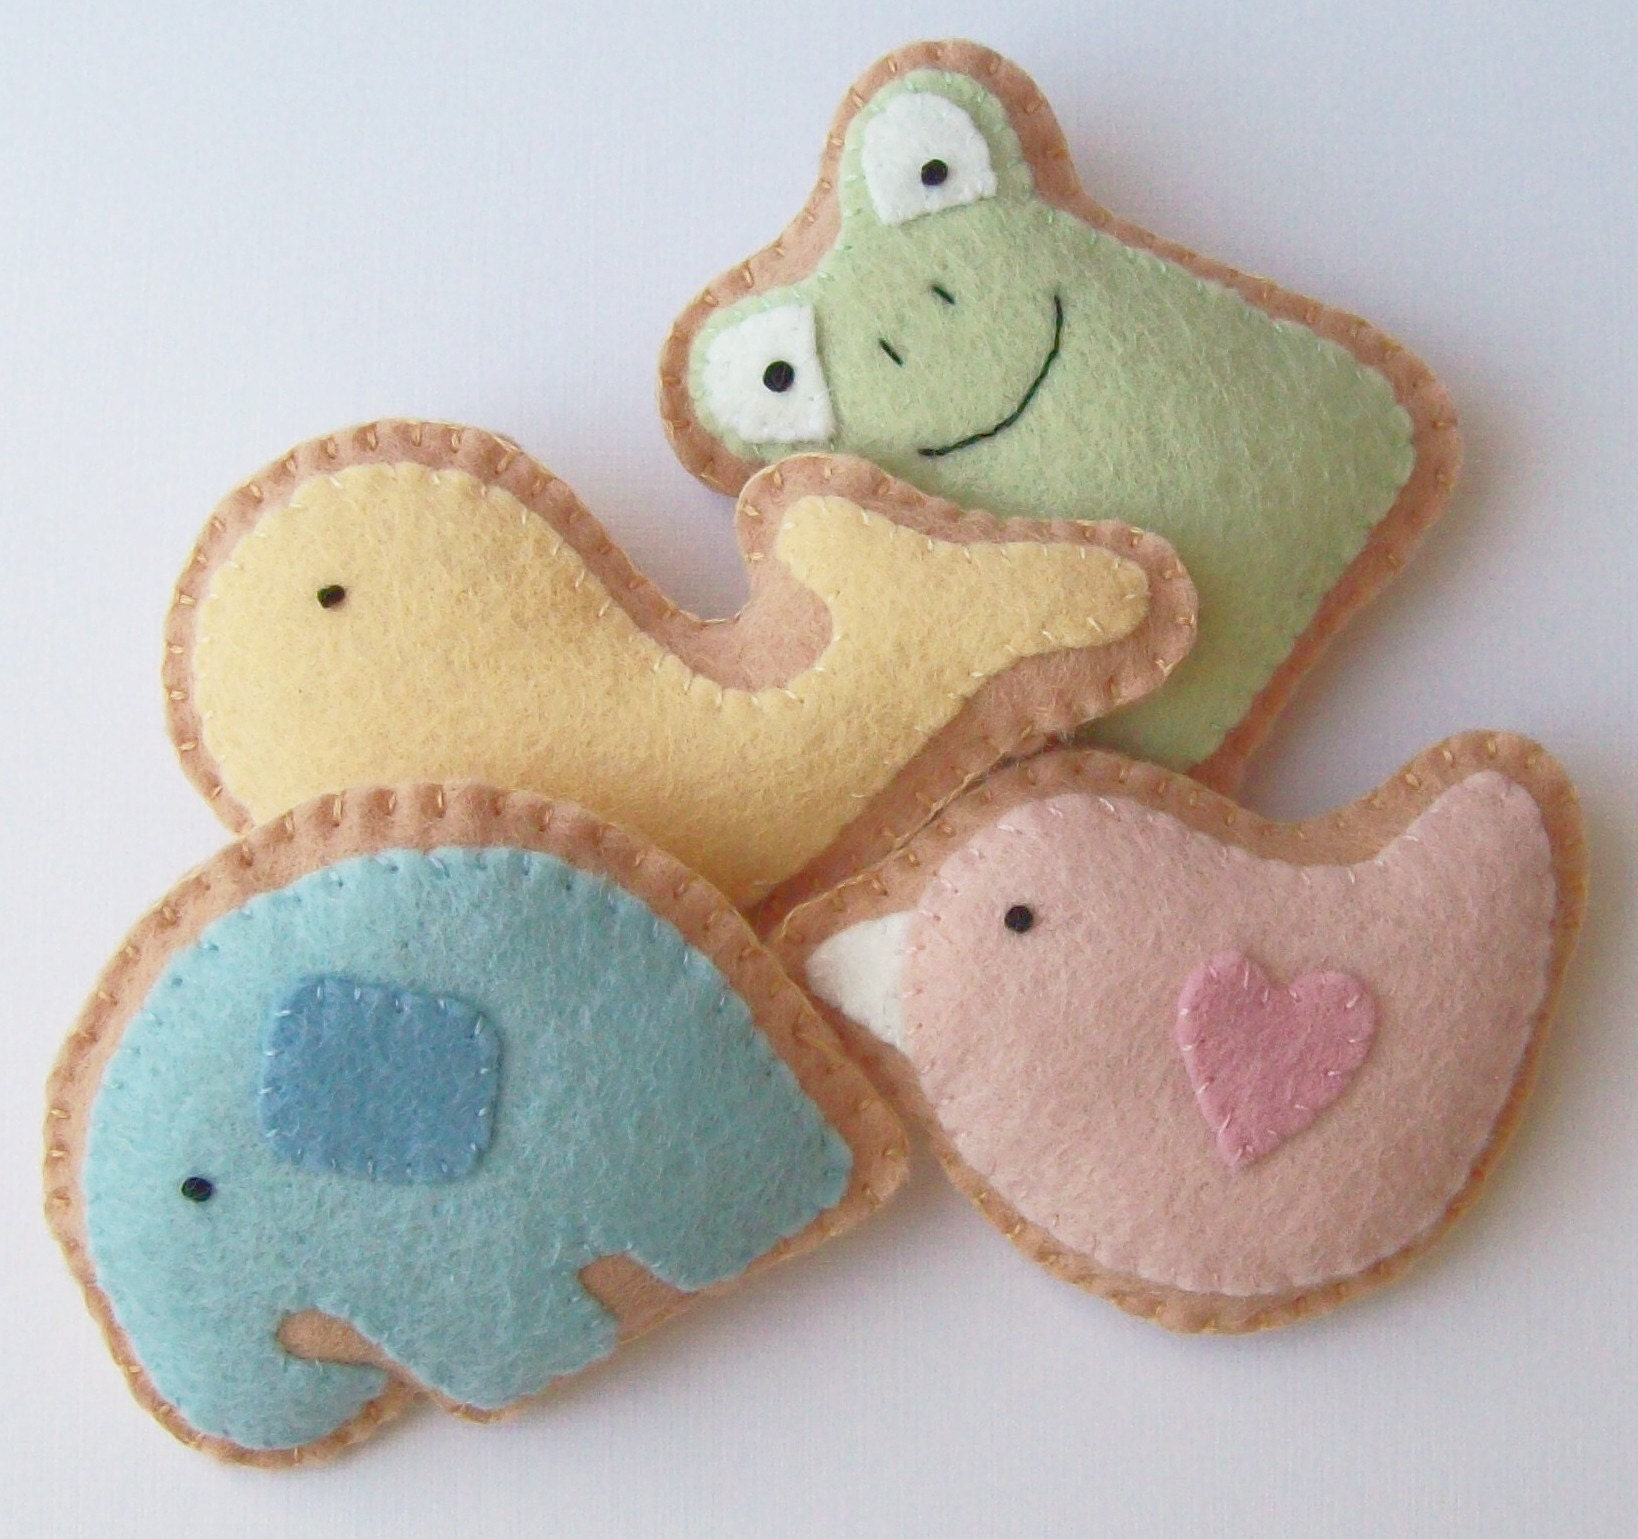 Adorable Set of 4 Felt Animal Cracker Cookies - Wonderful Gift Idea